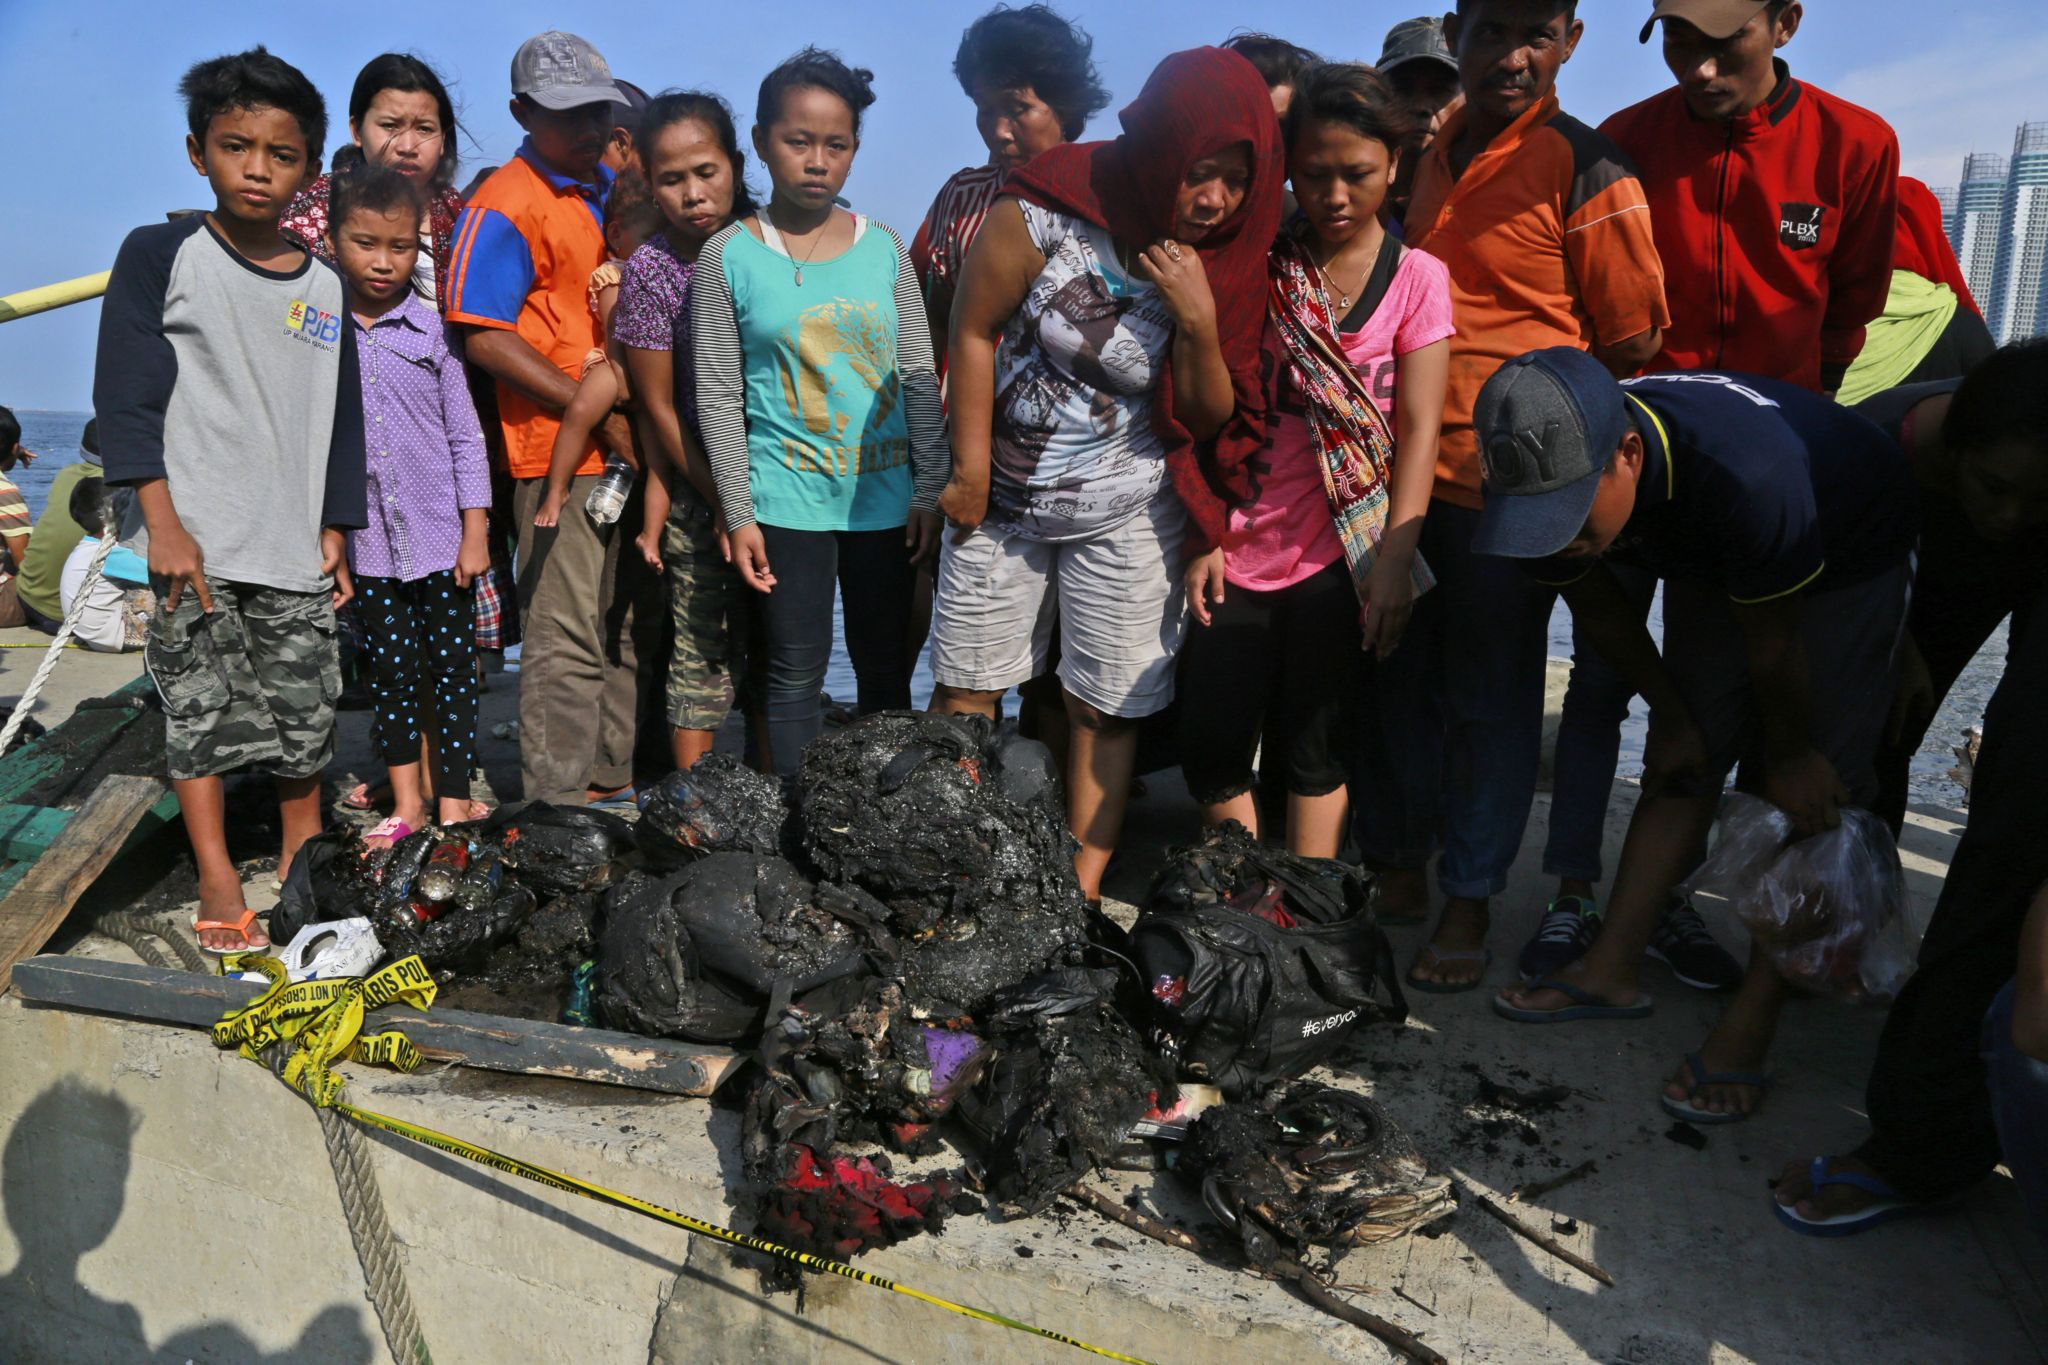 People inspect charred personal belongings of the passengers of a ferry that caught fire off the coast of Jakarta, at Muara Angke Port in Jakarta, Indonesia, Sunday, Jan. 1, 2017.